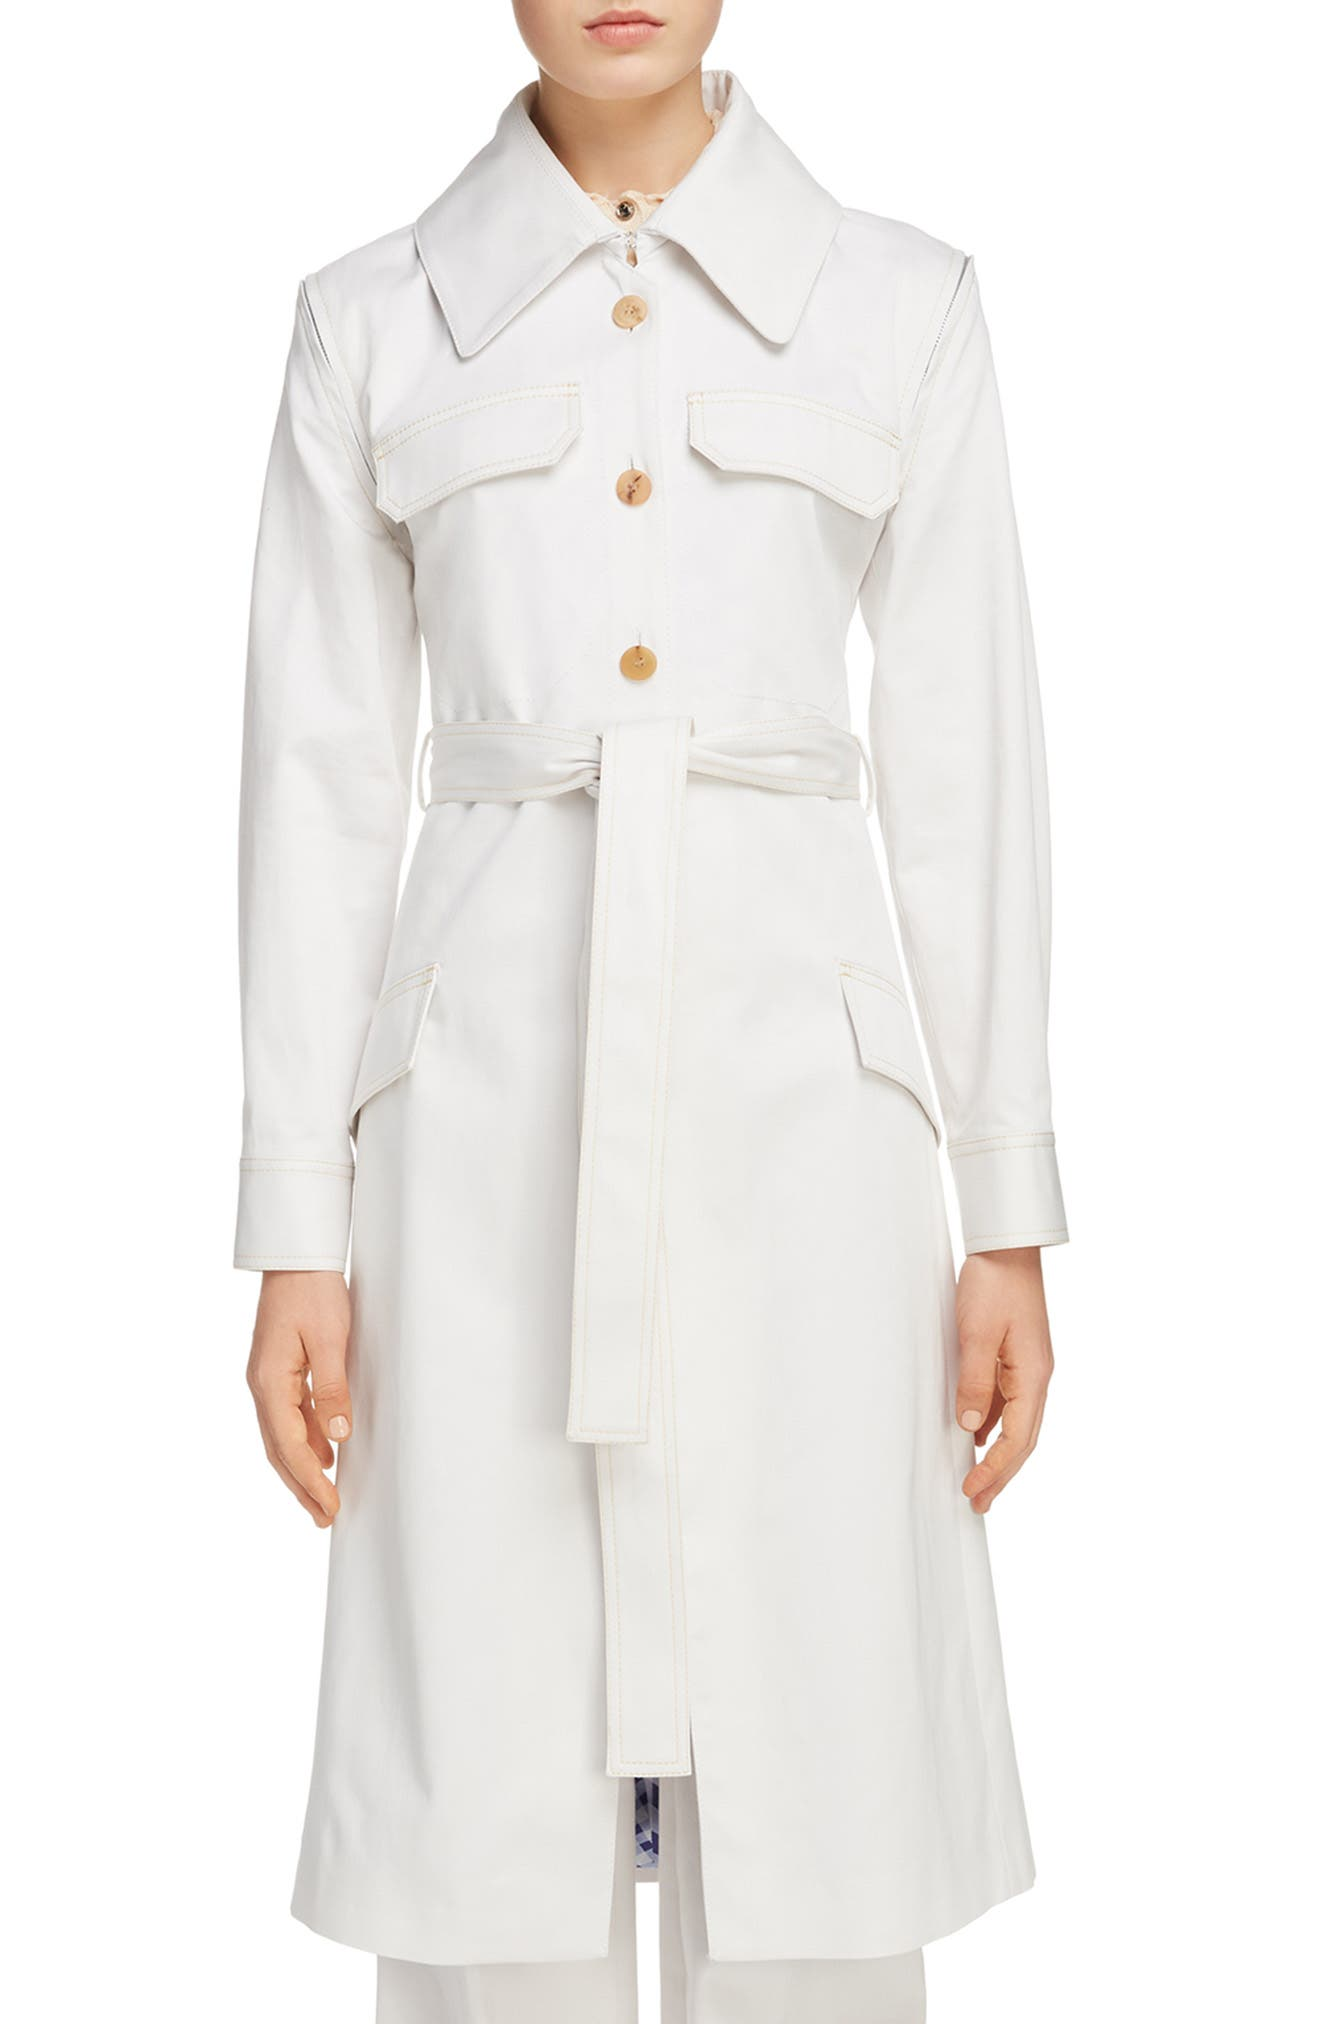 Olesia Removable Sleeve Belted Coat,                             Main thumbnail 1, color,                             900